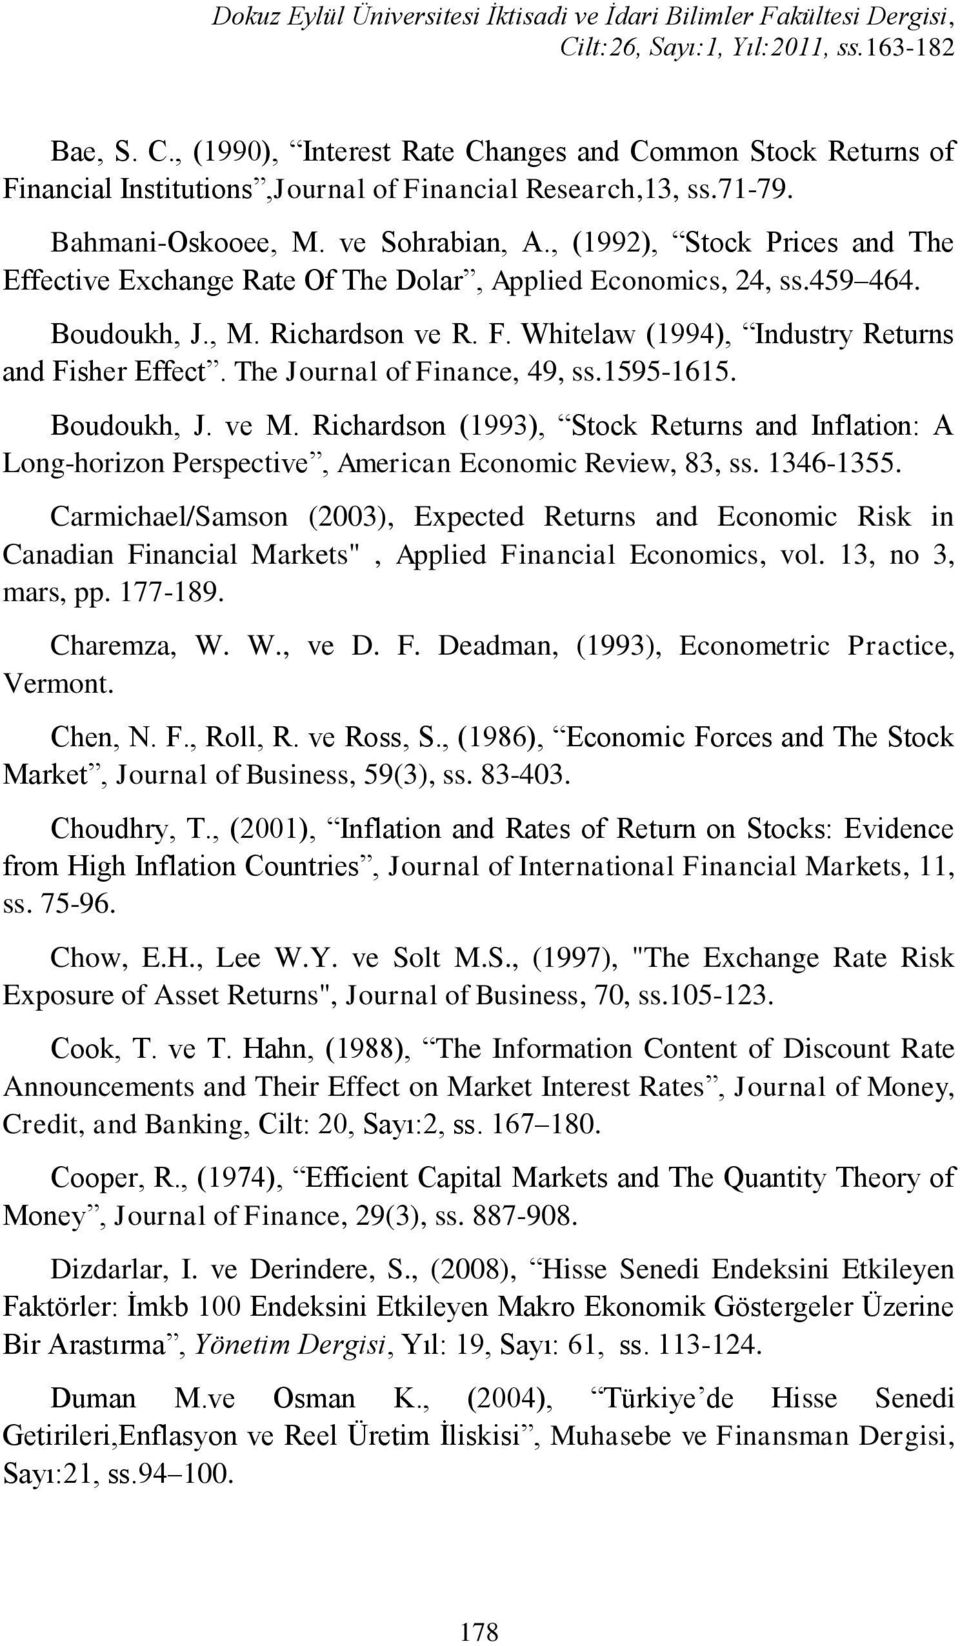 The Journal of Finance, 49, ss.1595-1615. Boudoukh, J. ve M. Richardson (1993), Stock Returns and Inflation: A Long-horizon Perspective, American Economic Review, 83, ss. 1346-1355.